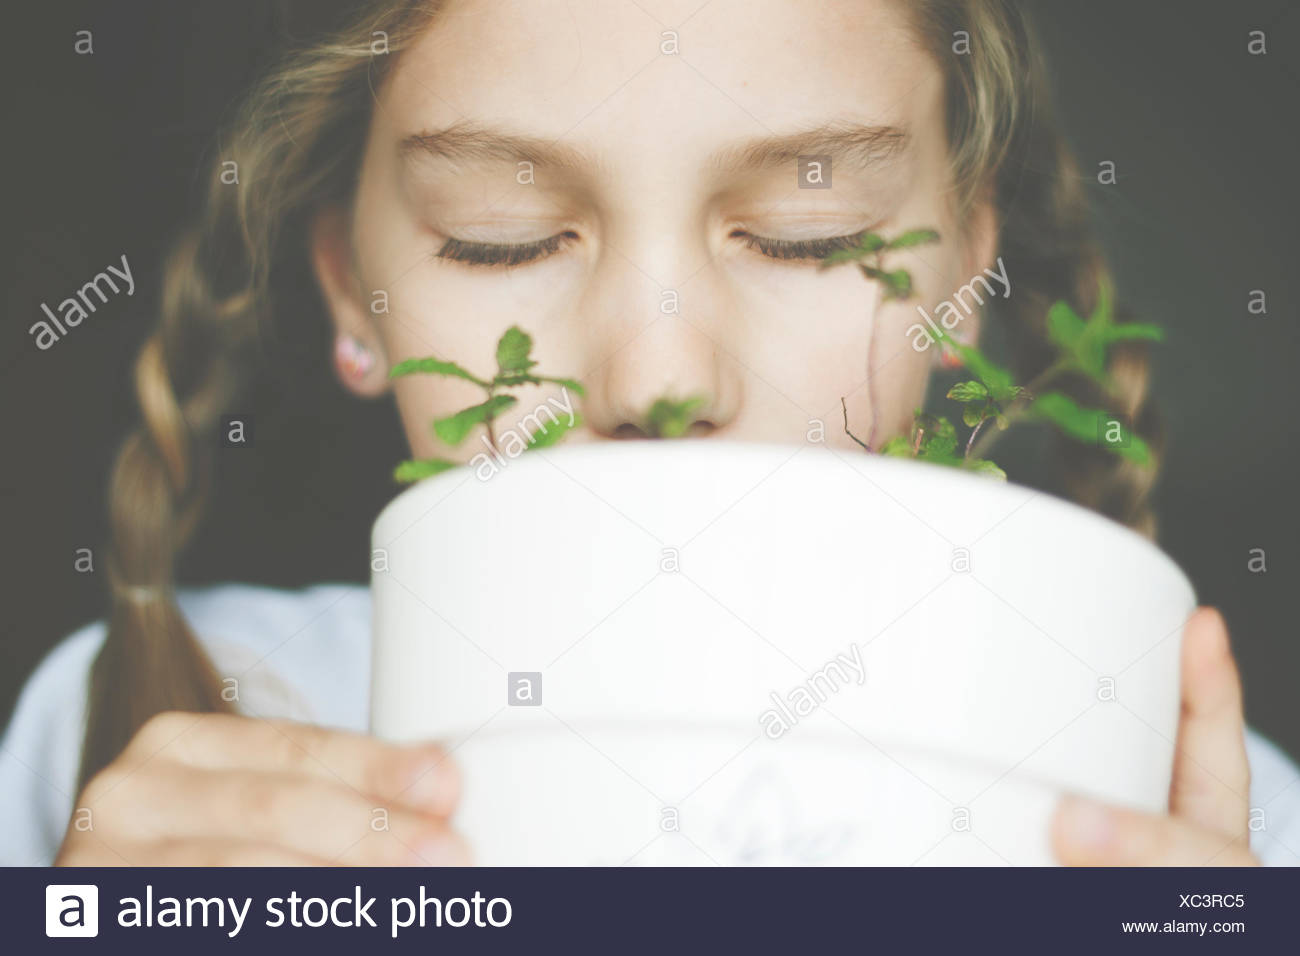 Girl smelling mint plant in a plant pot - Stock Image